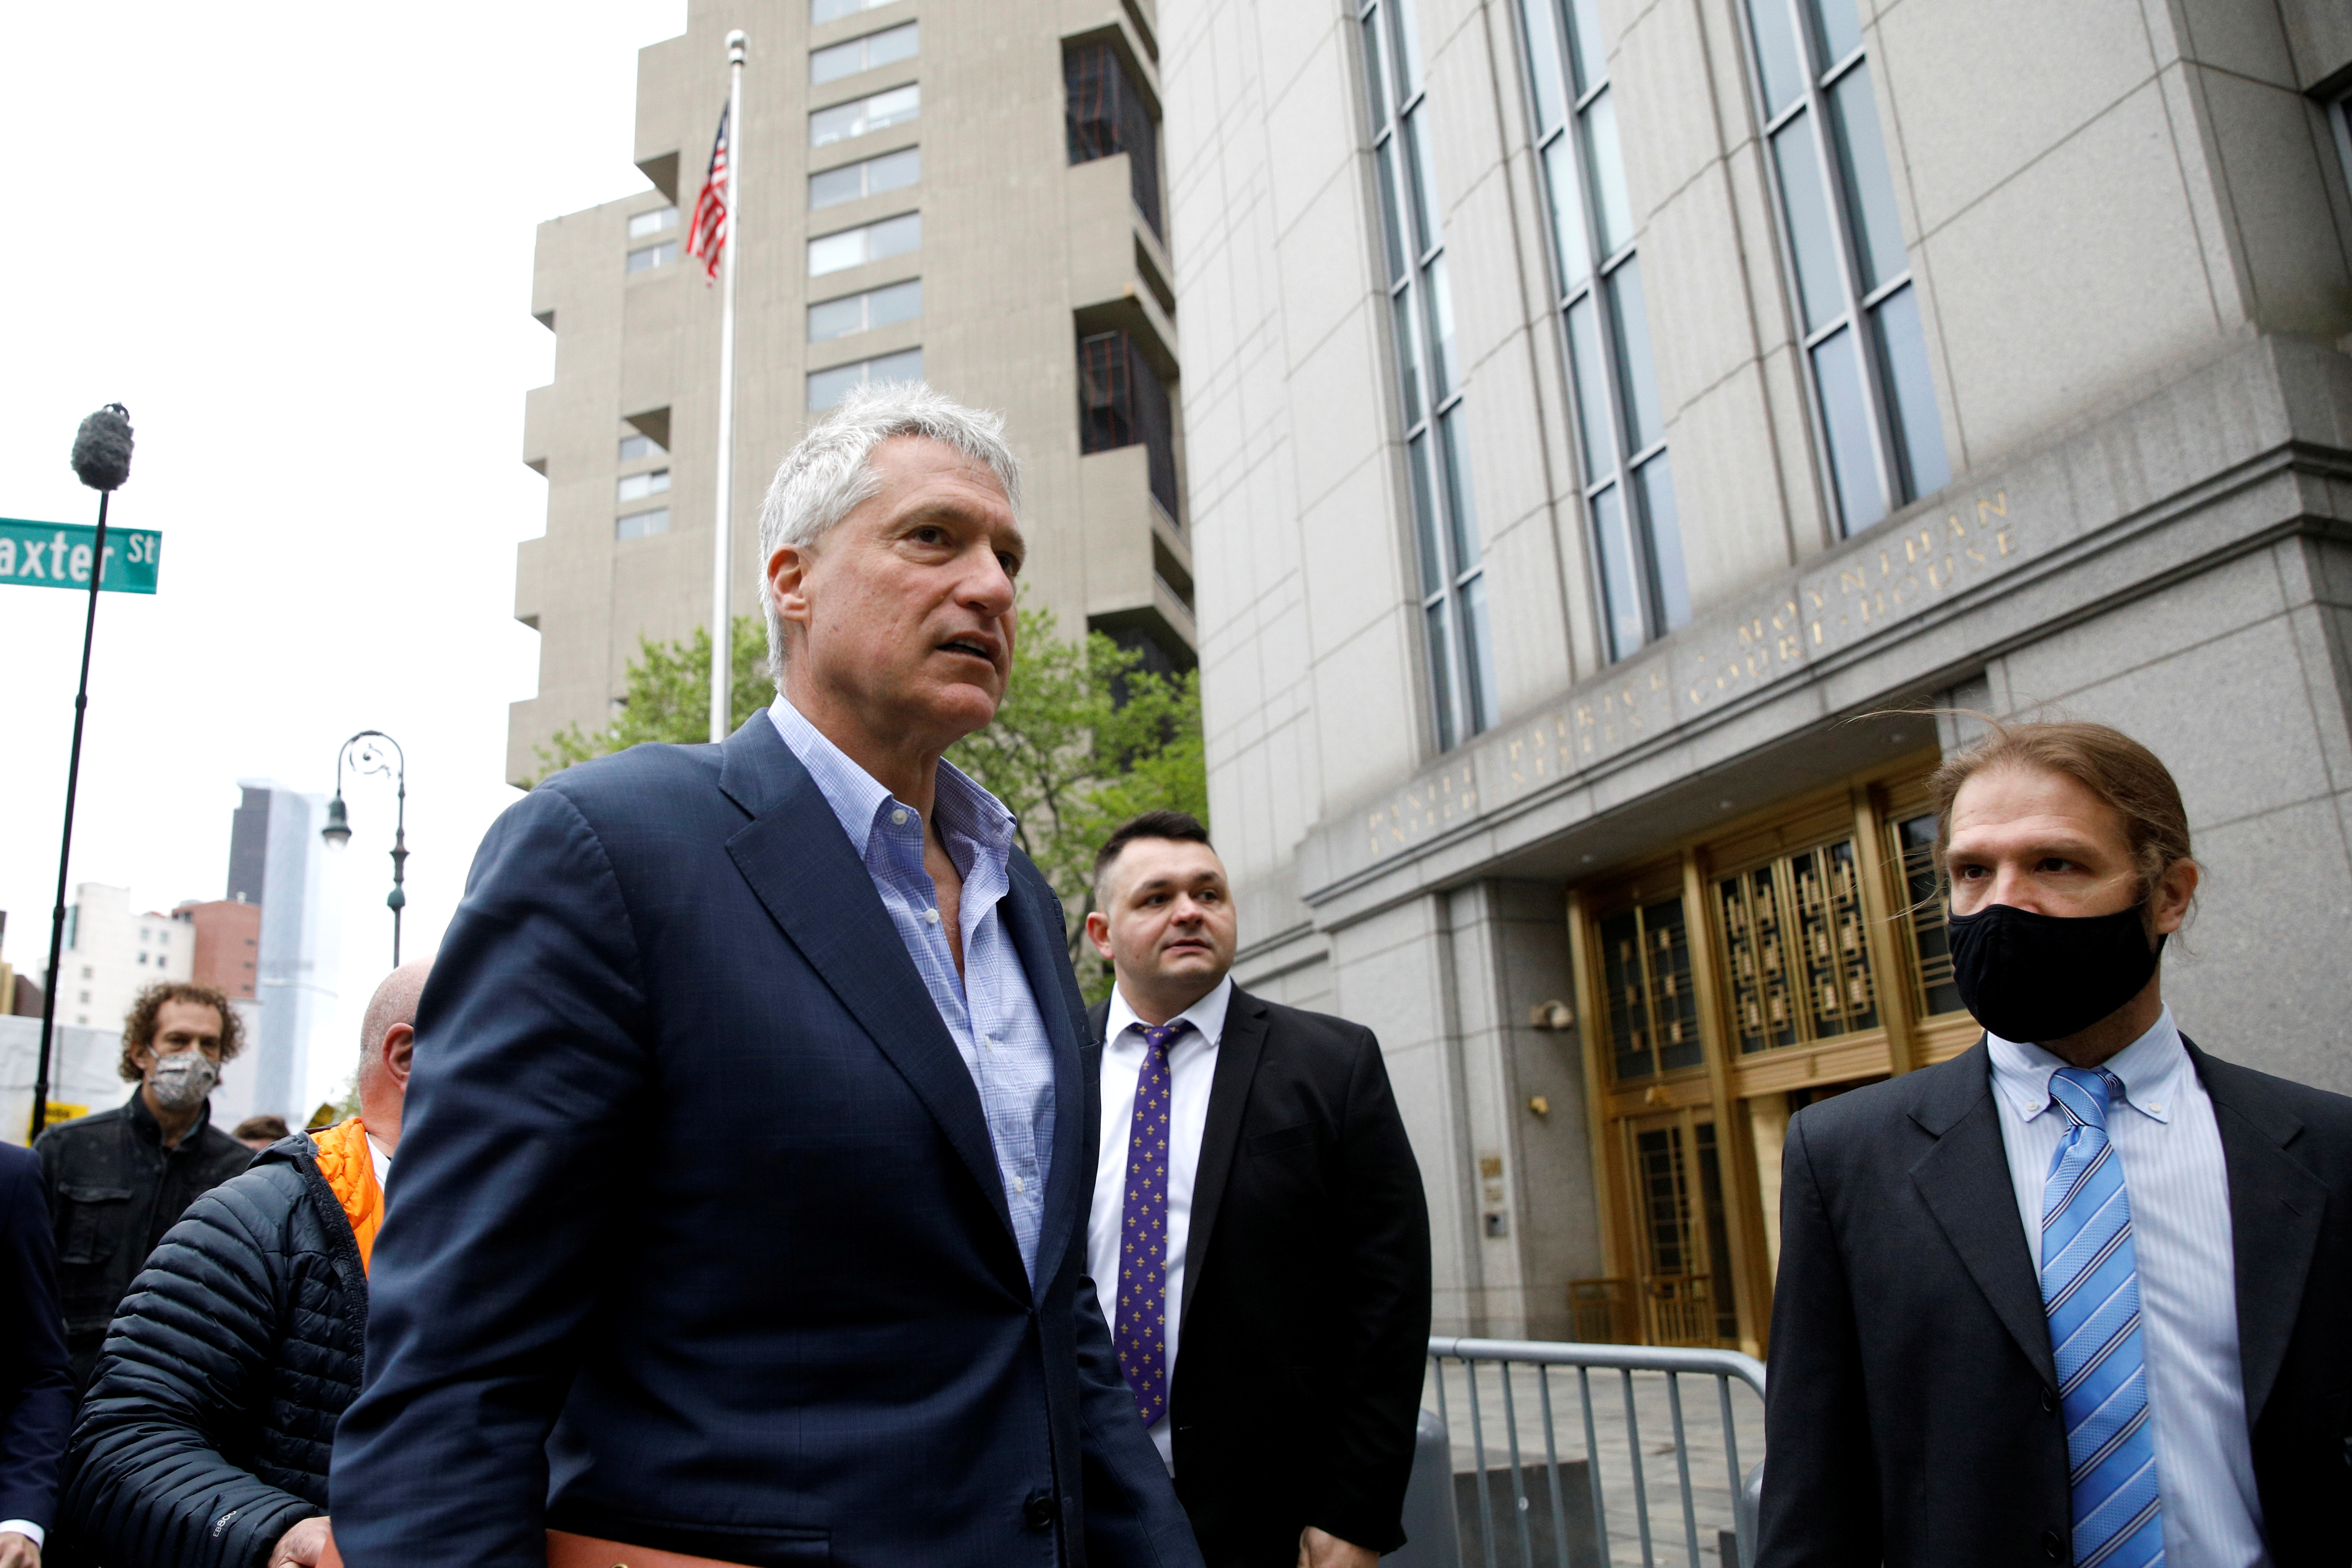 Attorney Steven Donziger arrives for his criminal contempt trail at the Manhattan Federal Courthouse in the Manhattan borough of New York City, May 10, 2021.  REUTERS/Brendan McDermid